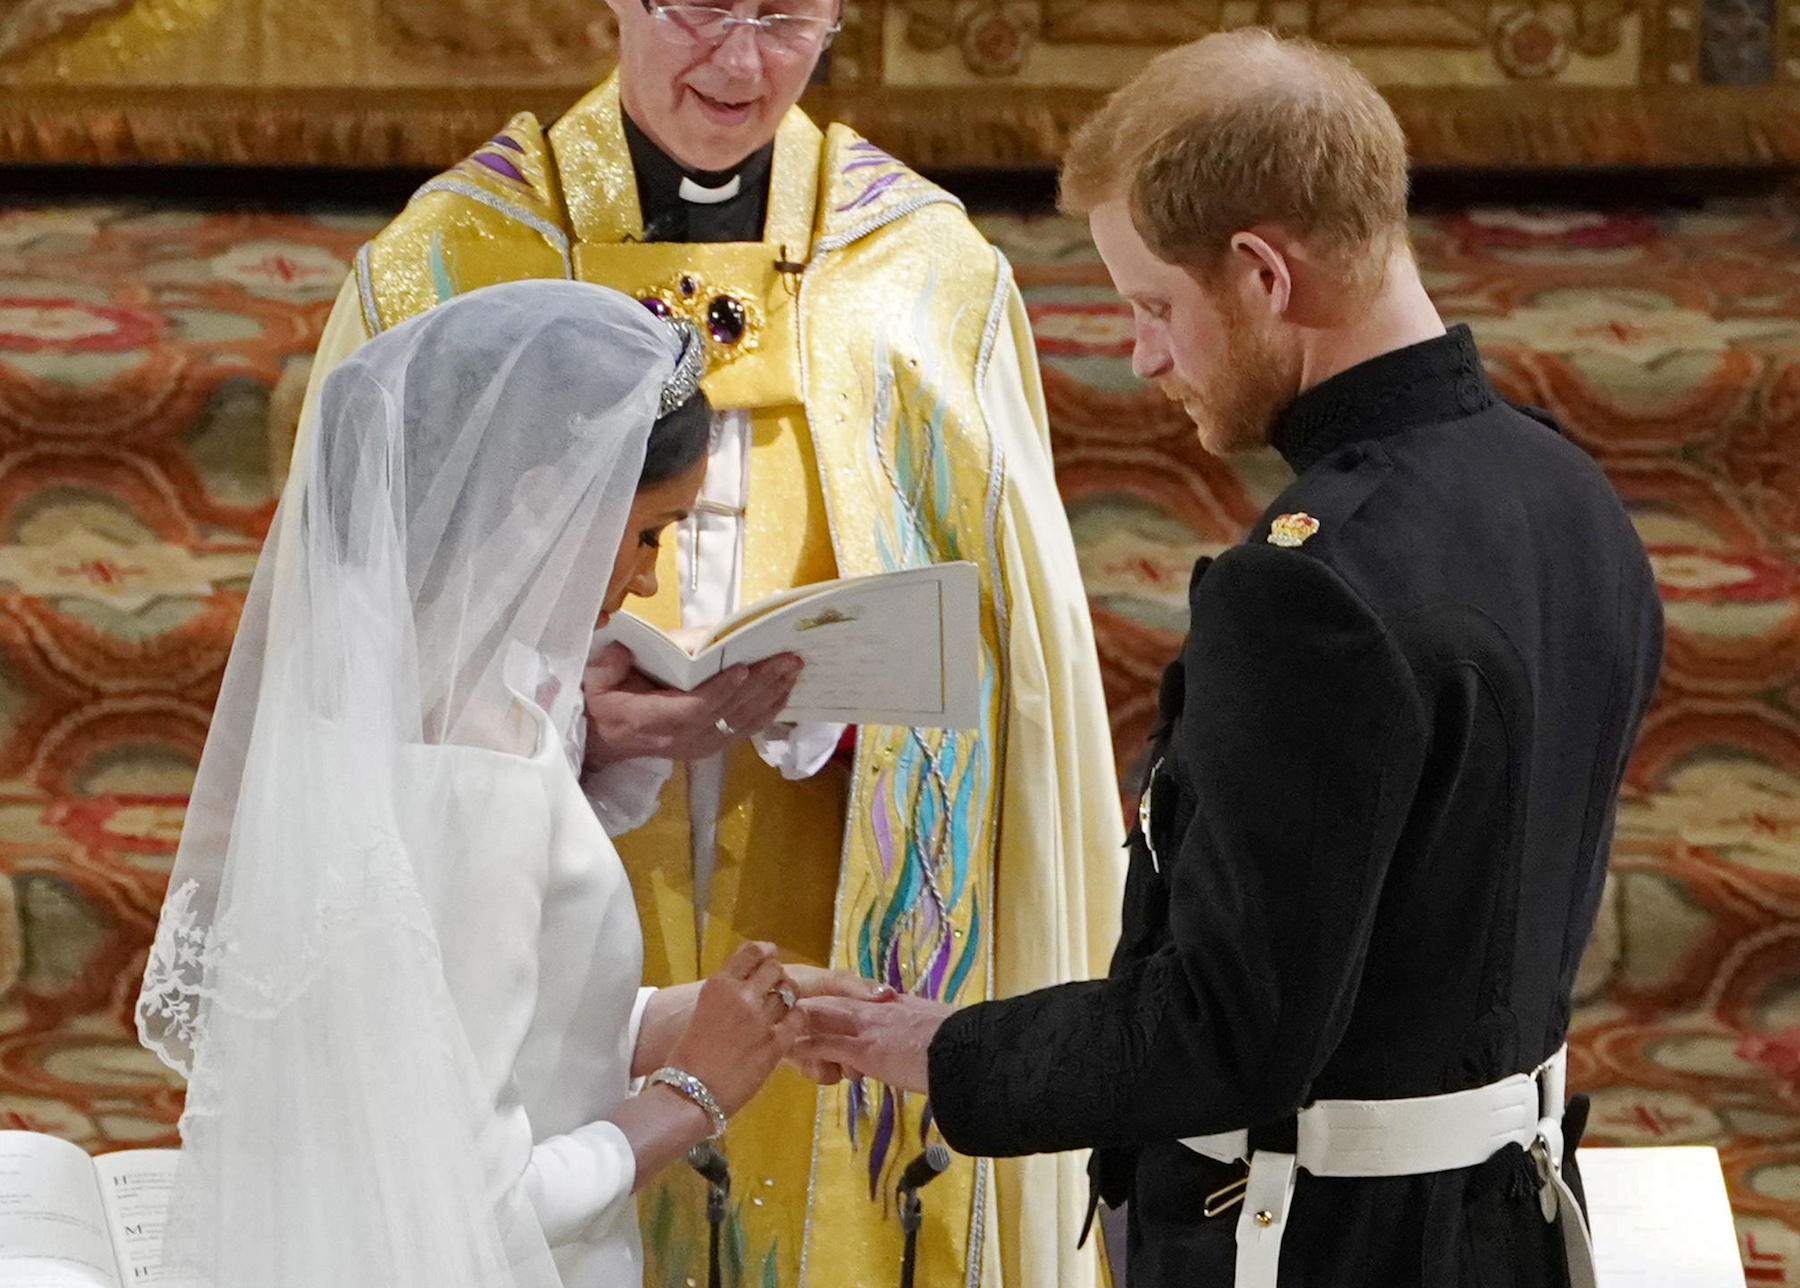 "<div class=""meta image-caption""><div class=""origin-logo origin-image wls""><span>wls</span></div><span class=""caption-text"">US fiancee of Britain's Prince Harry Meghan Markle and Britain's Prince Harry, Duke of Sussex exchange rings during their wedding ceremony in St George's Chapel. (Owen Humphrey/AFP/Getty Images)</span></div>"